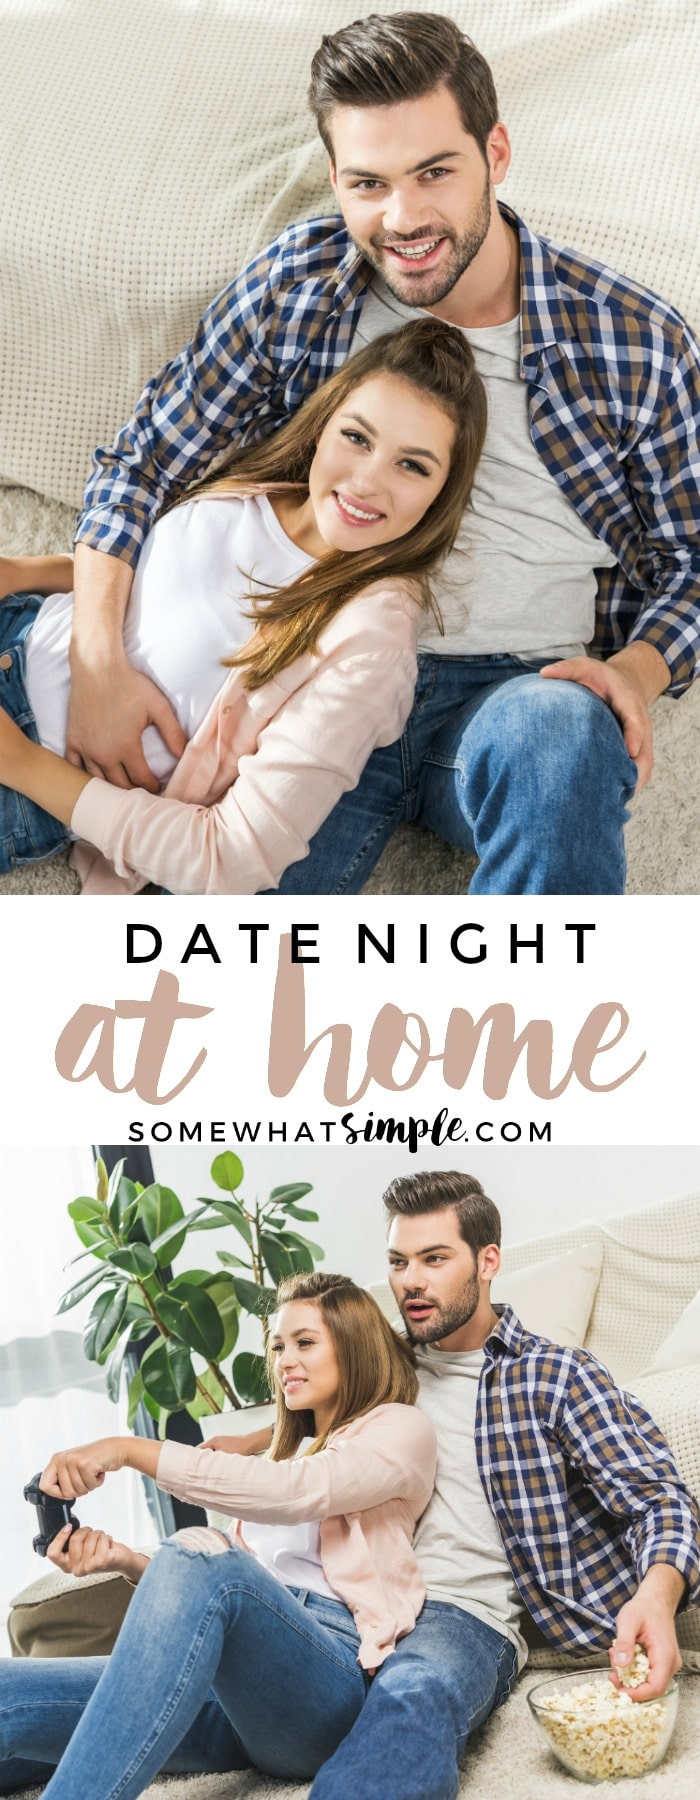 Planning a date night at home is a great way to have some casual fun with your sweetheart! via @somewhatsimple